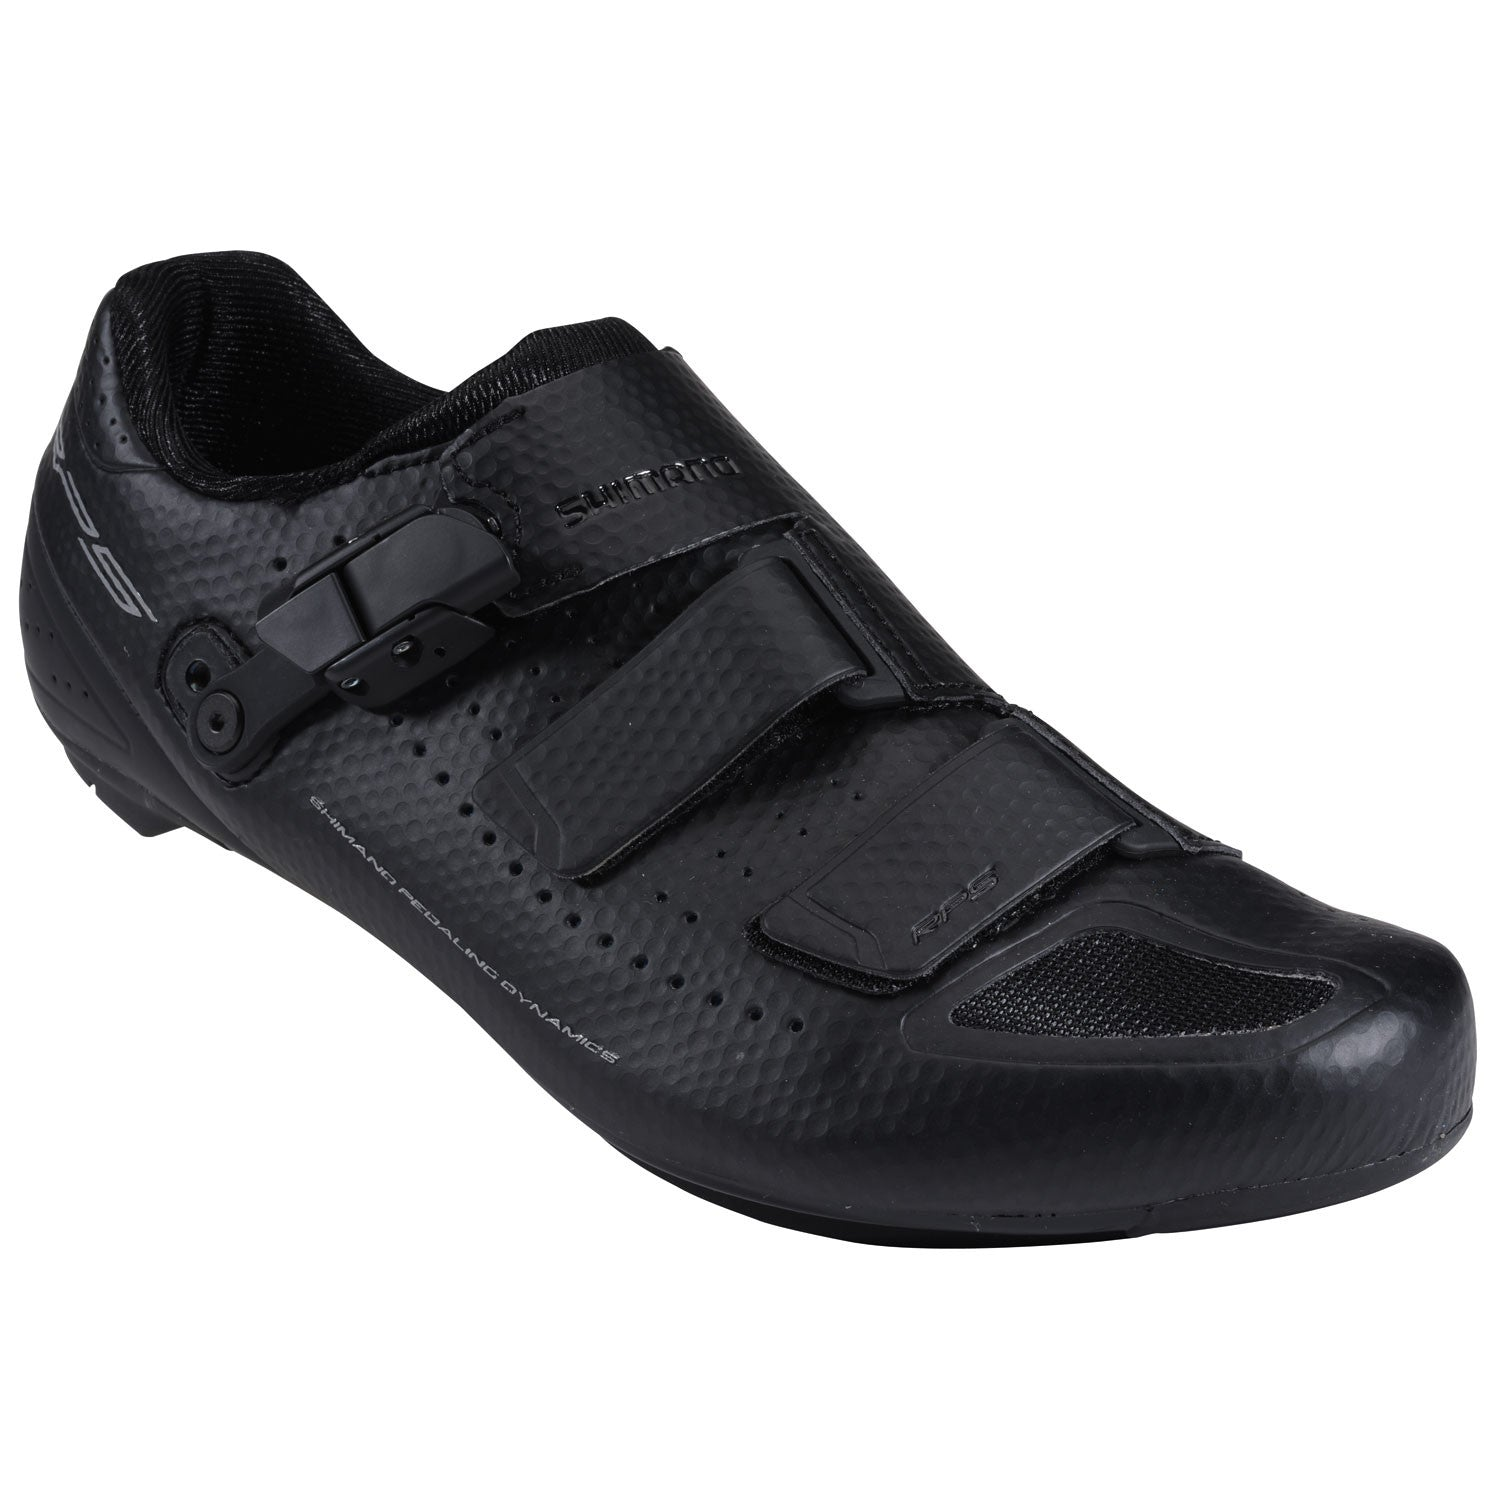 Shimano SH-RP5 Cycling Shoes - Men's